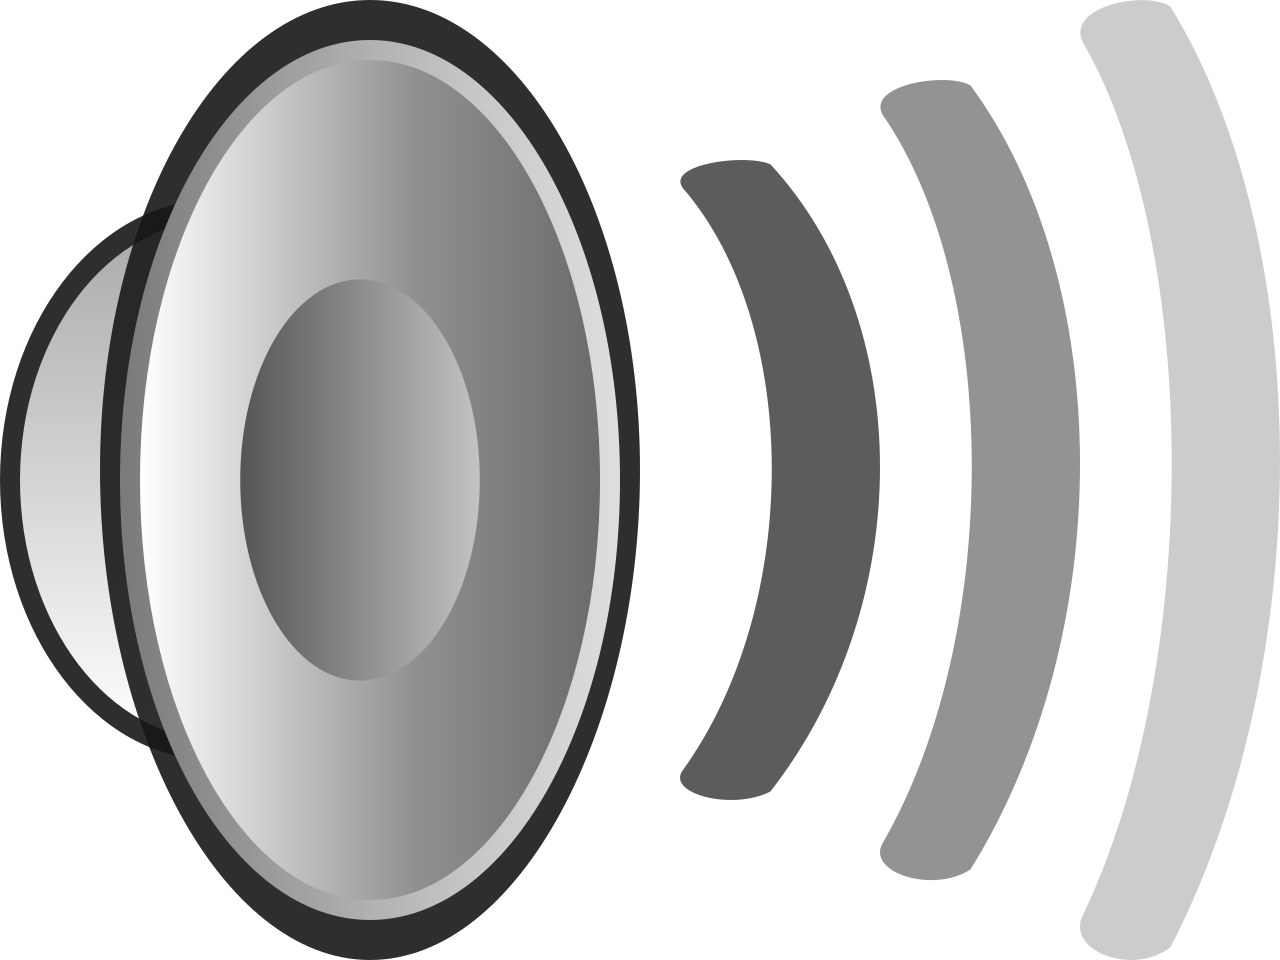 Drums clipart sound source. File icon svg wikipedia